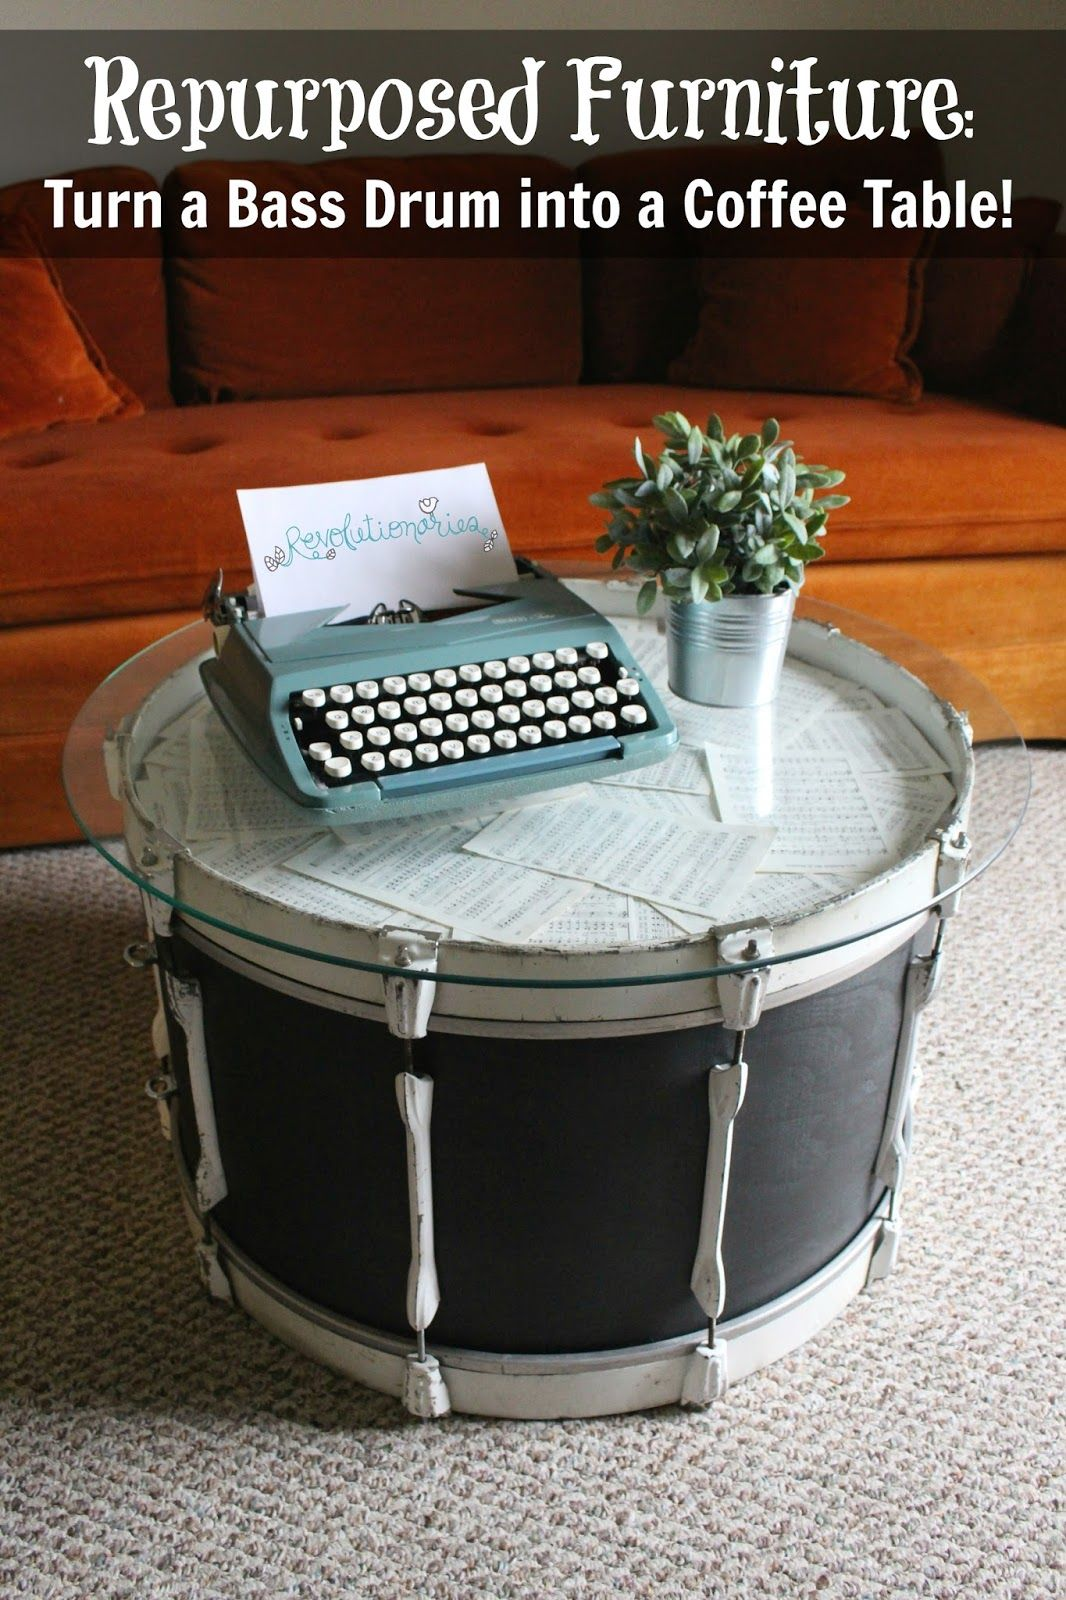 repurposed furniture: turn a bass drum into a coffee table